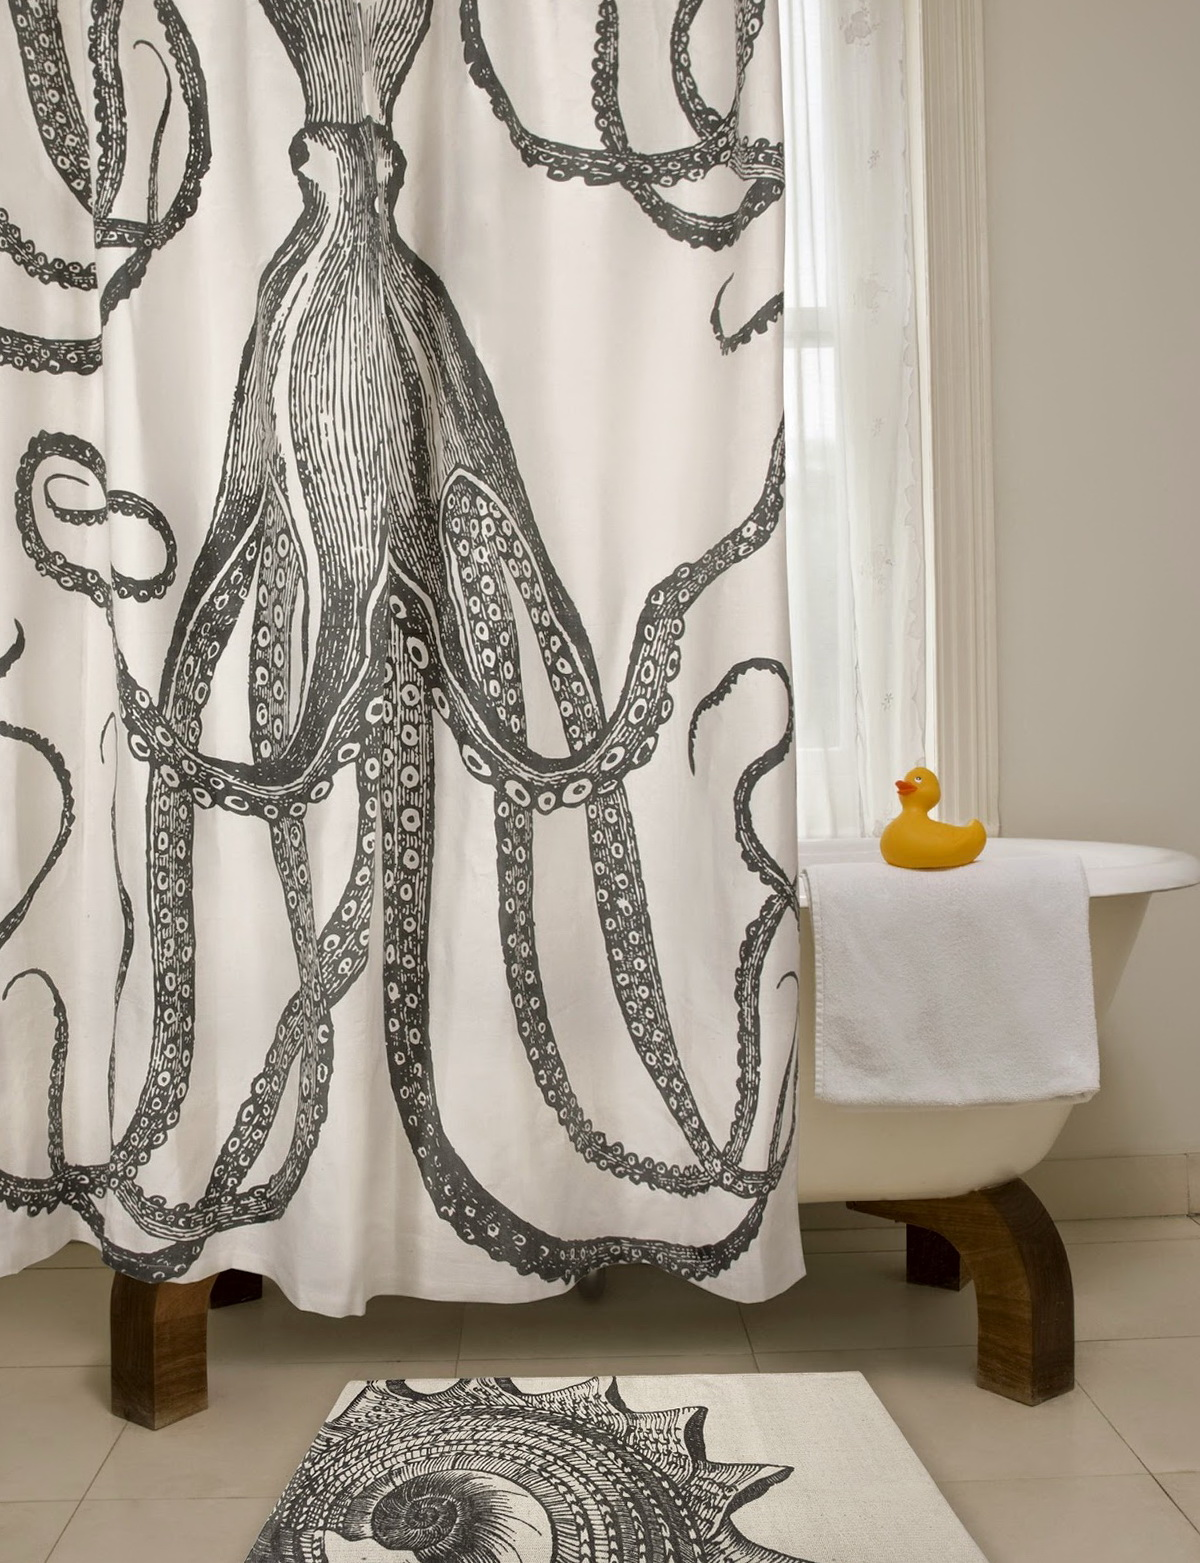 Diy Shower Curtain Art